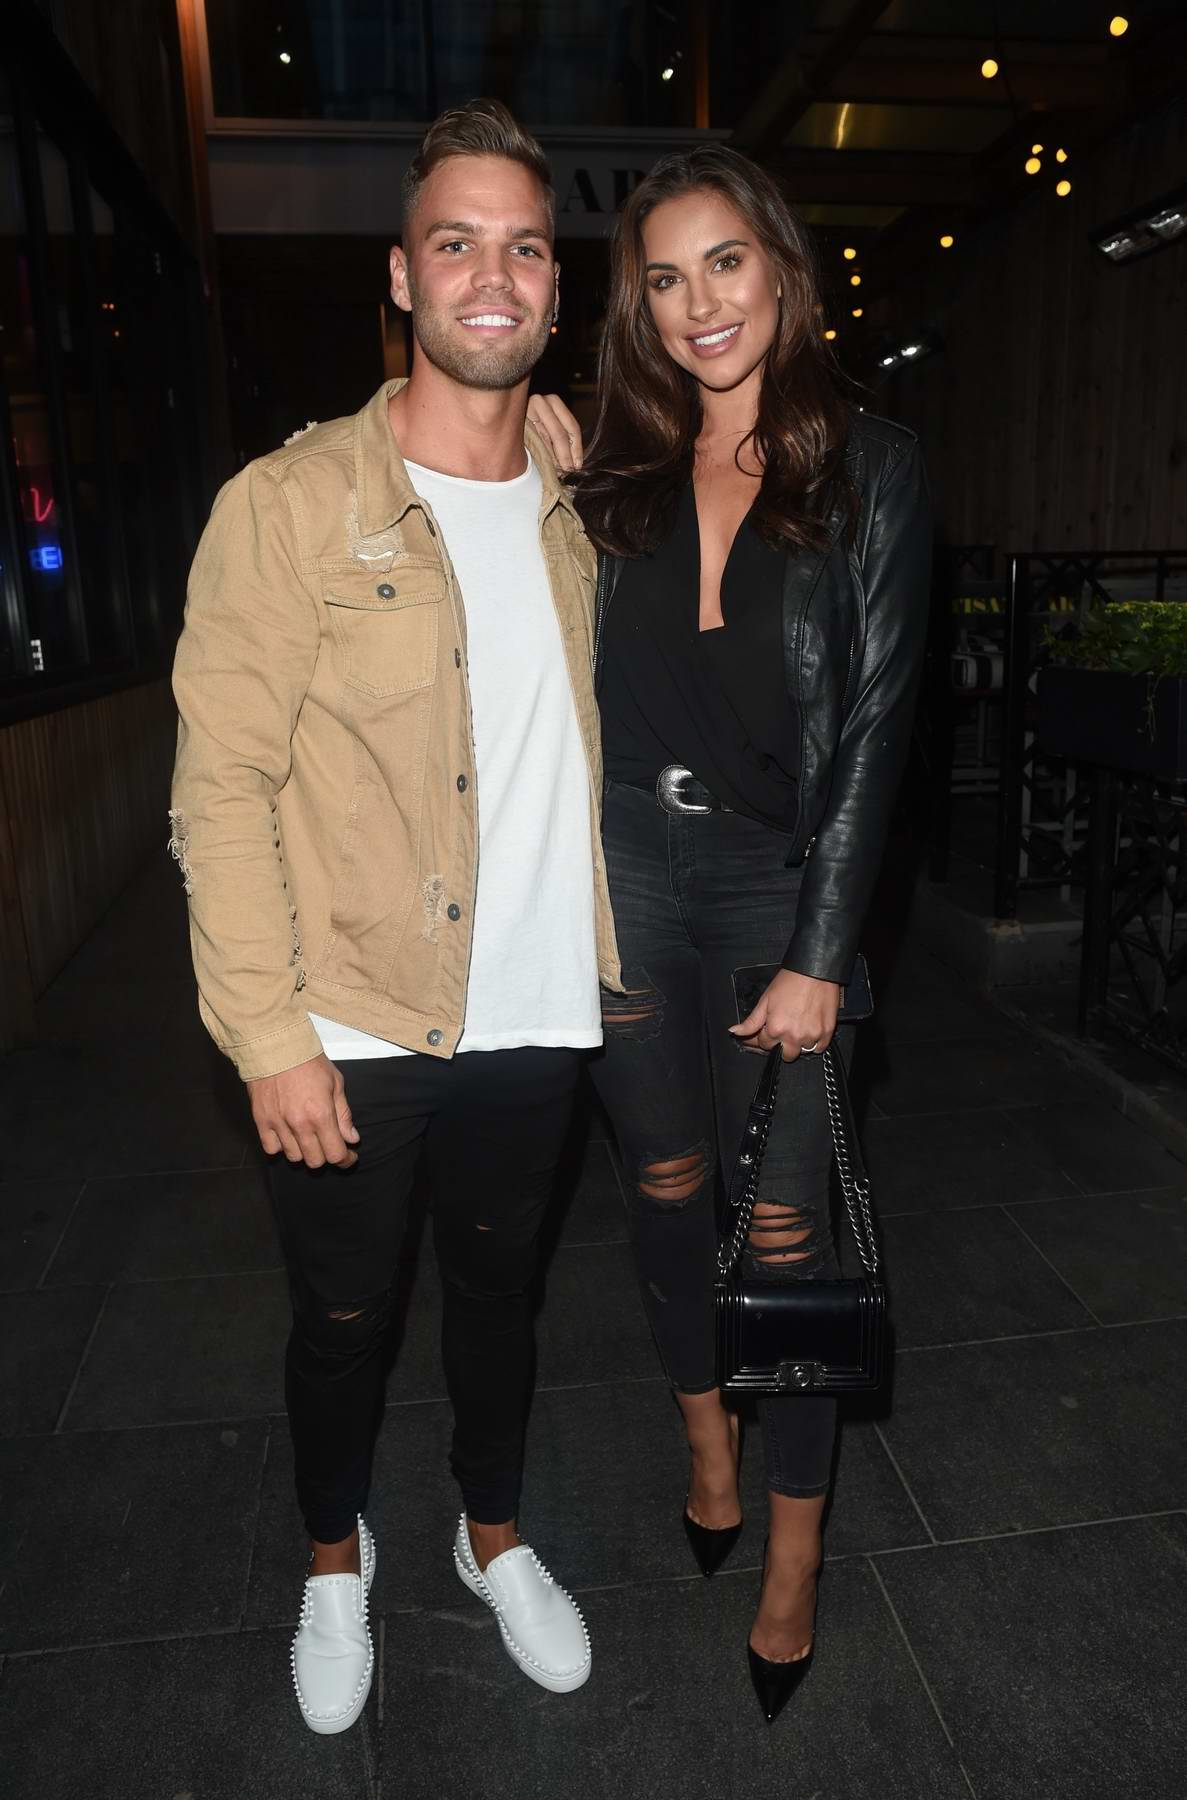 Jessica Shears and Dom Lever enjoying a Night out at Neighbourhood in Manchester, UK